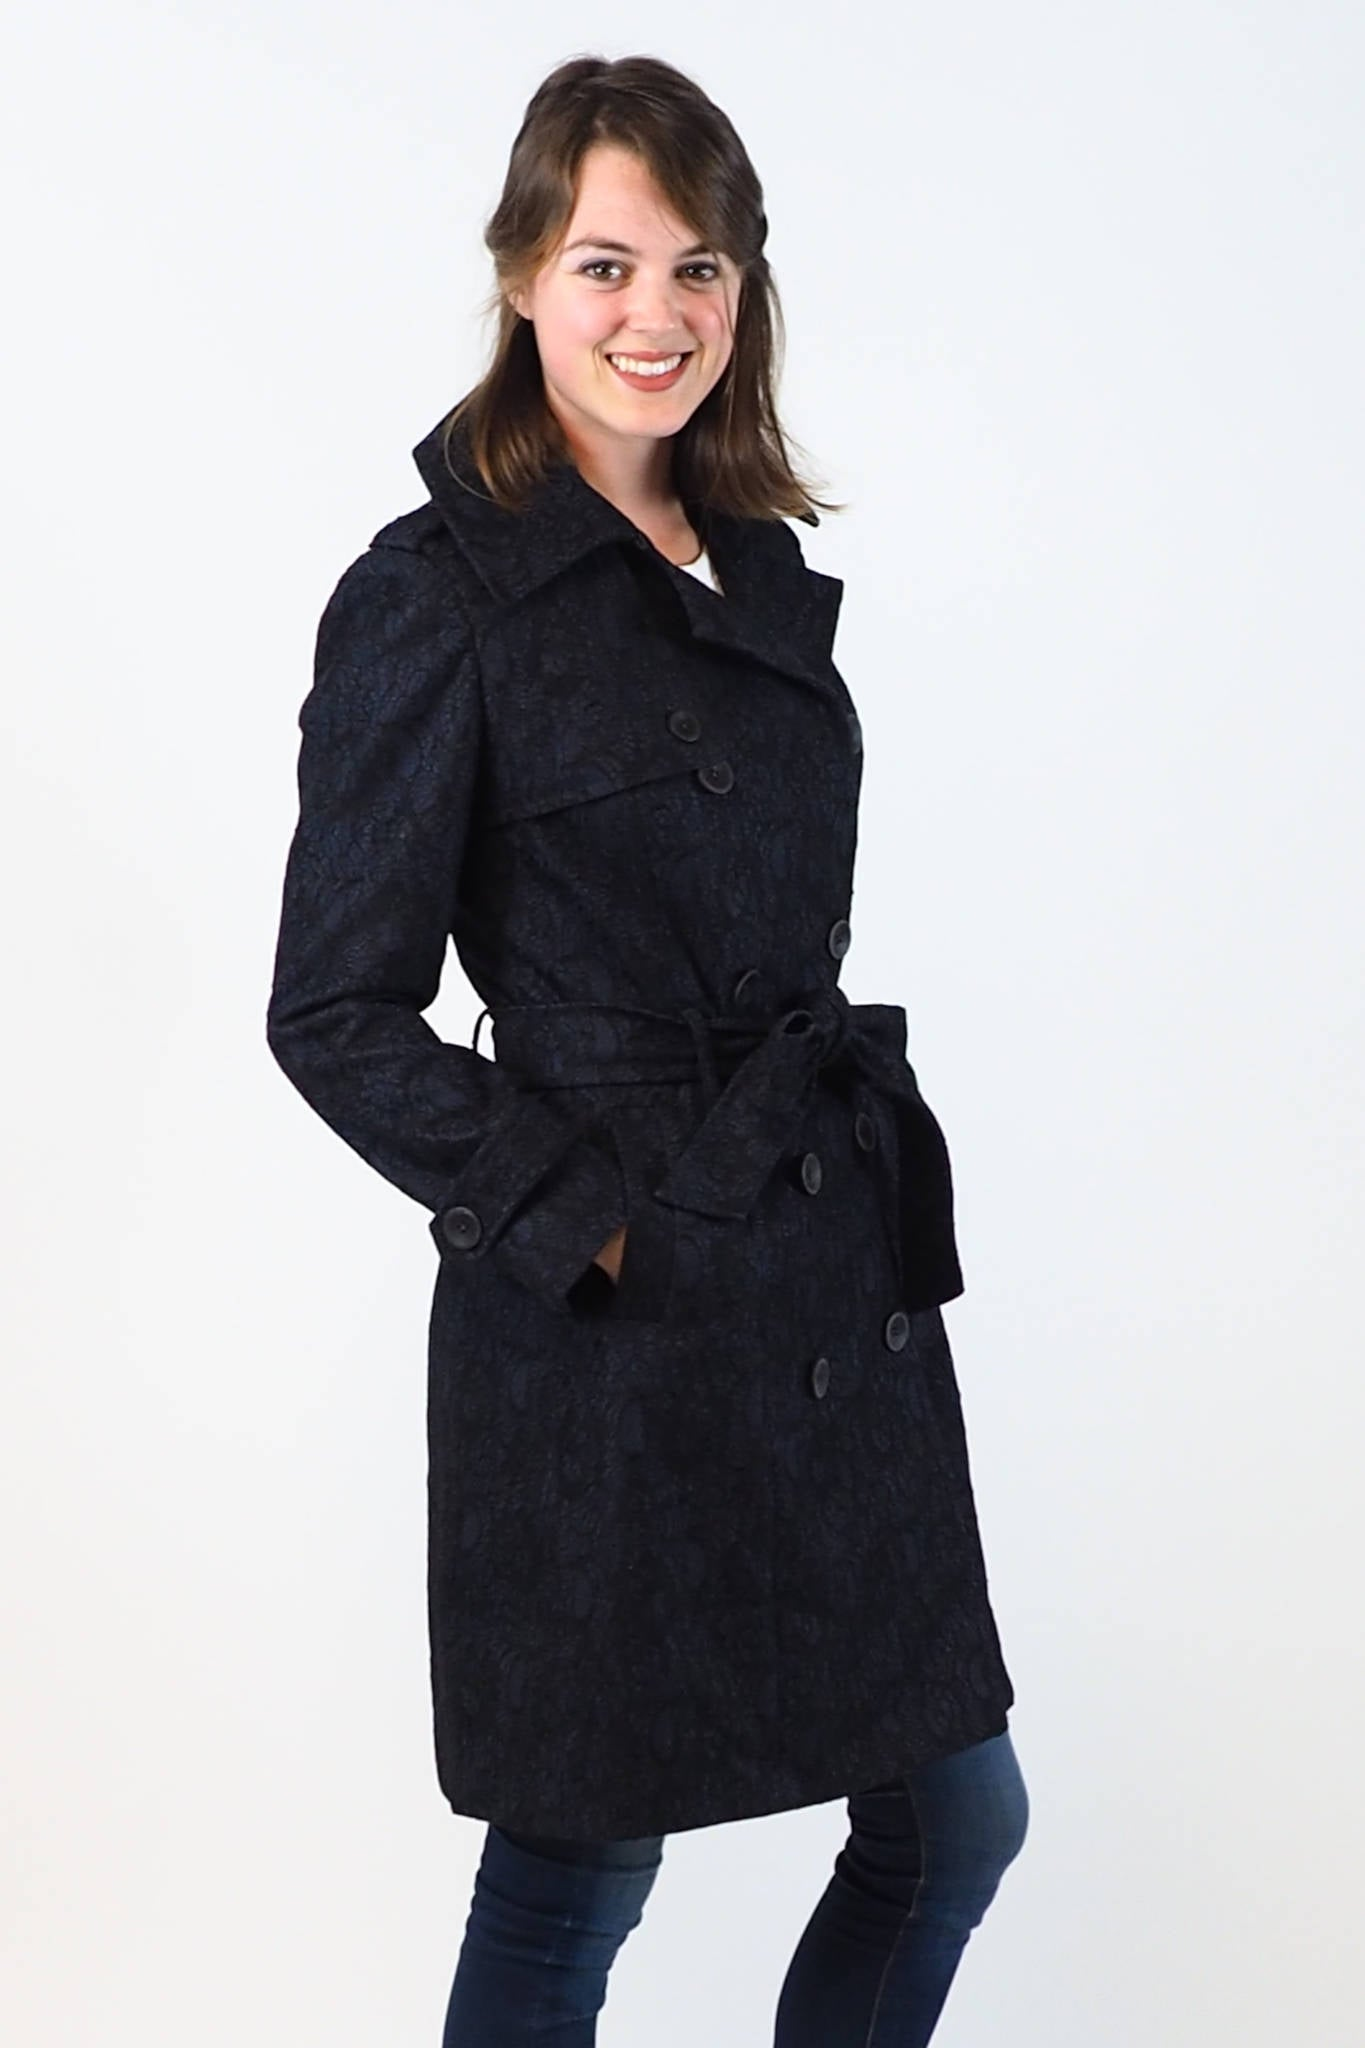 Upside Cyclestyle Women's Trench Coat in Navy on model - side view